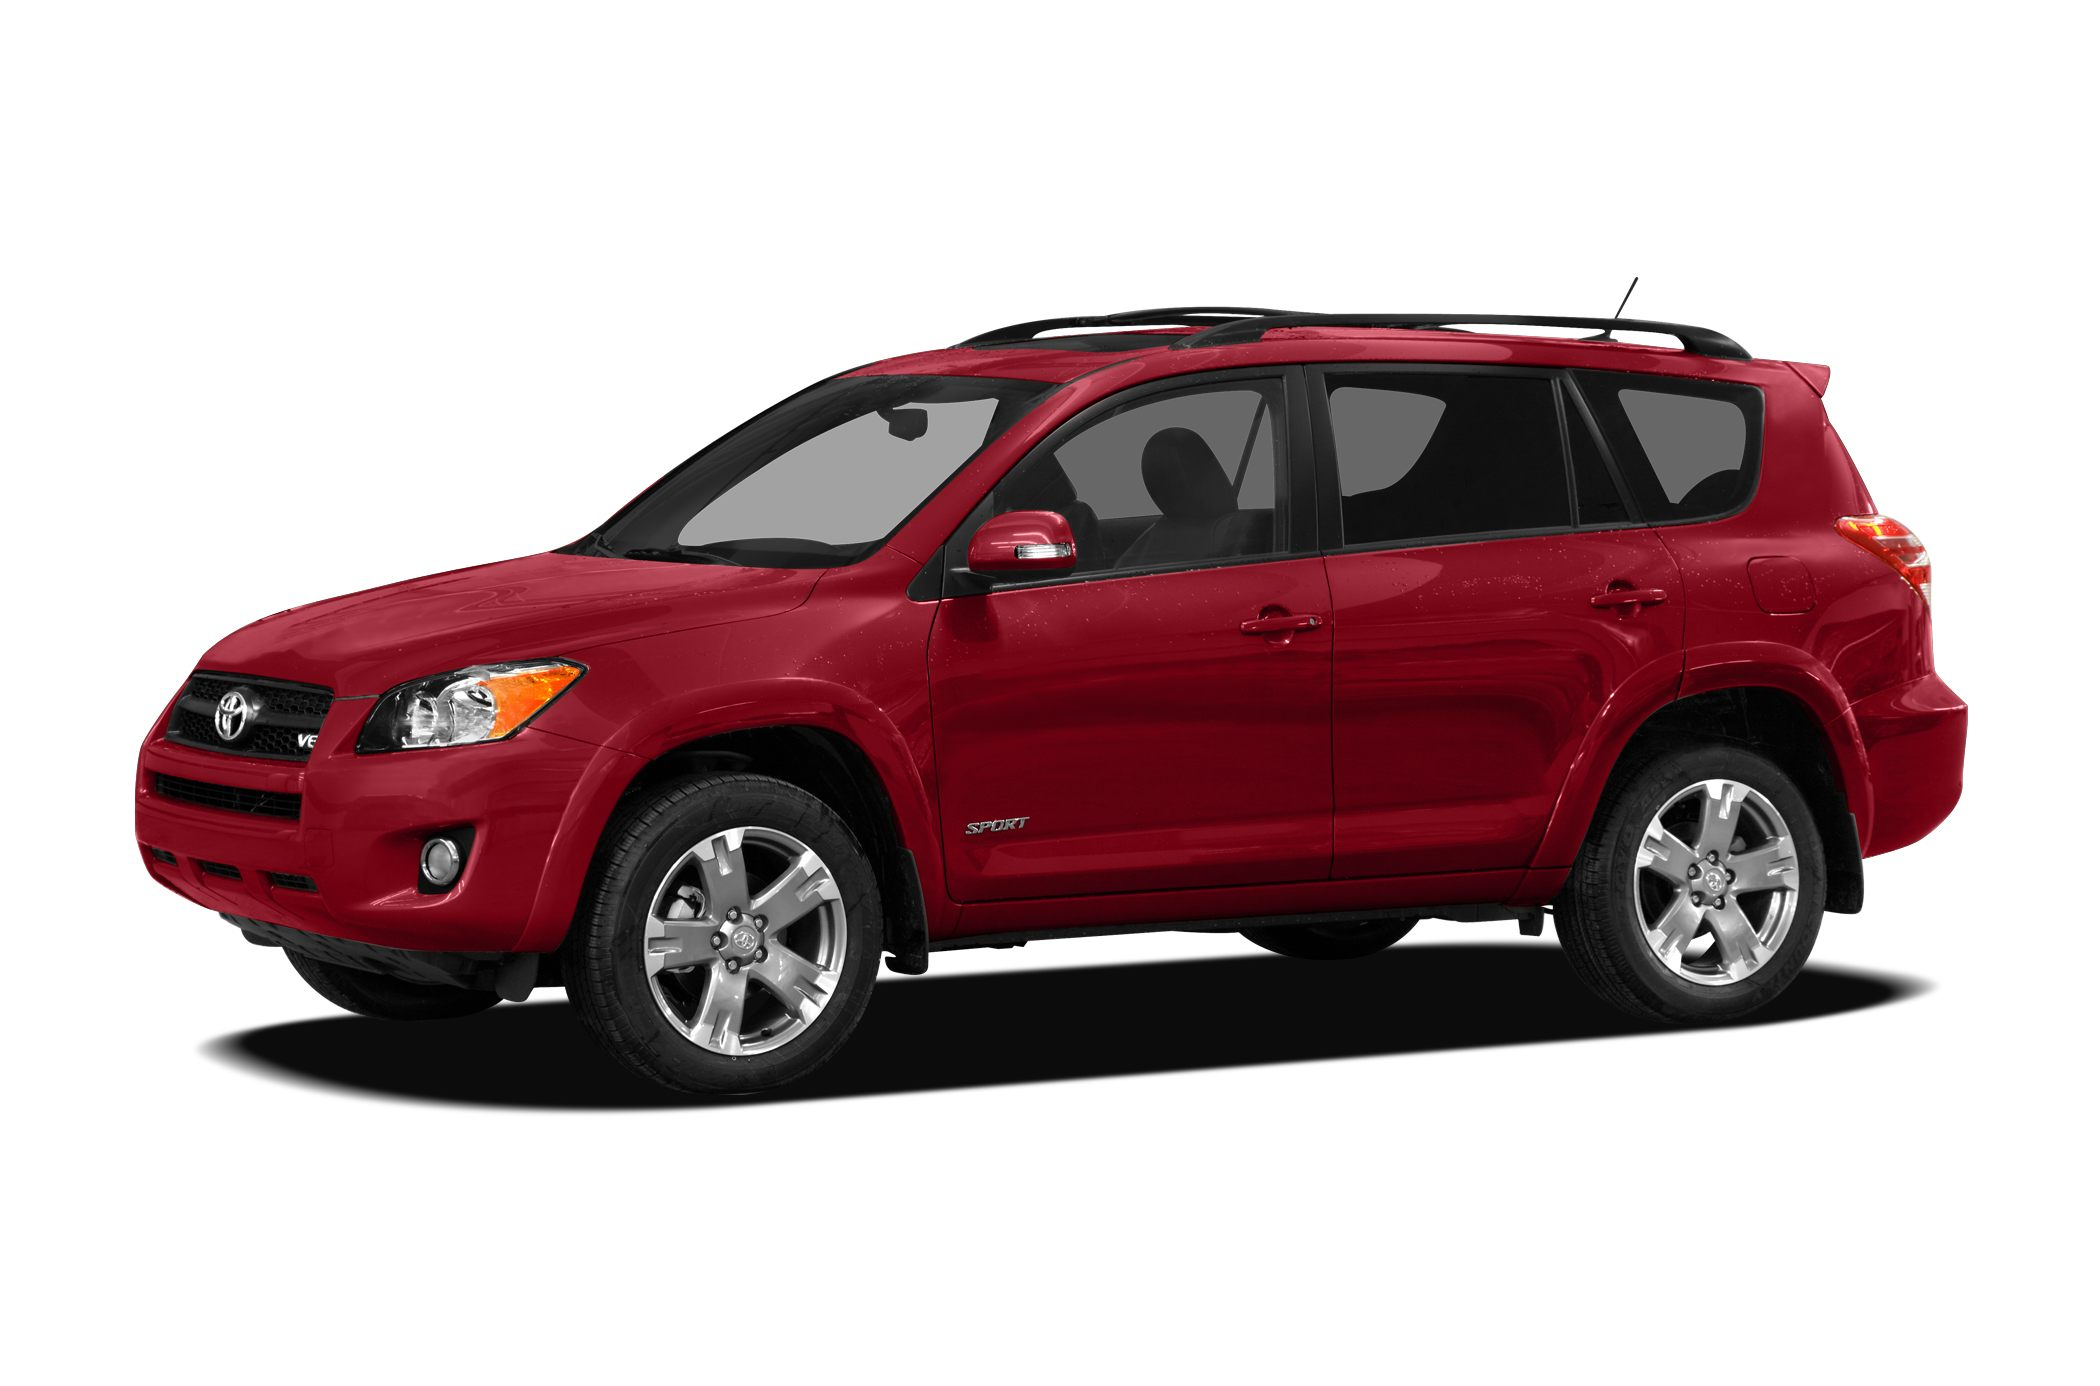 2009 Toyota RAV4 Sport SUV for sale in Austin for $12,623 with 90,307 miles.